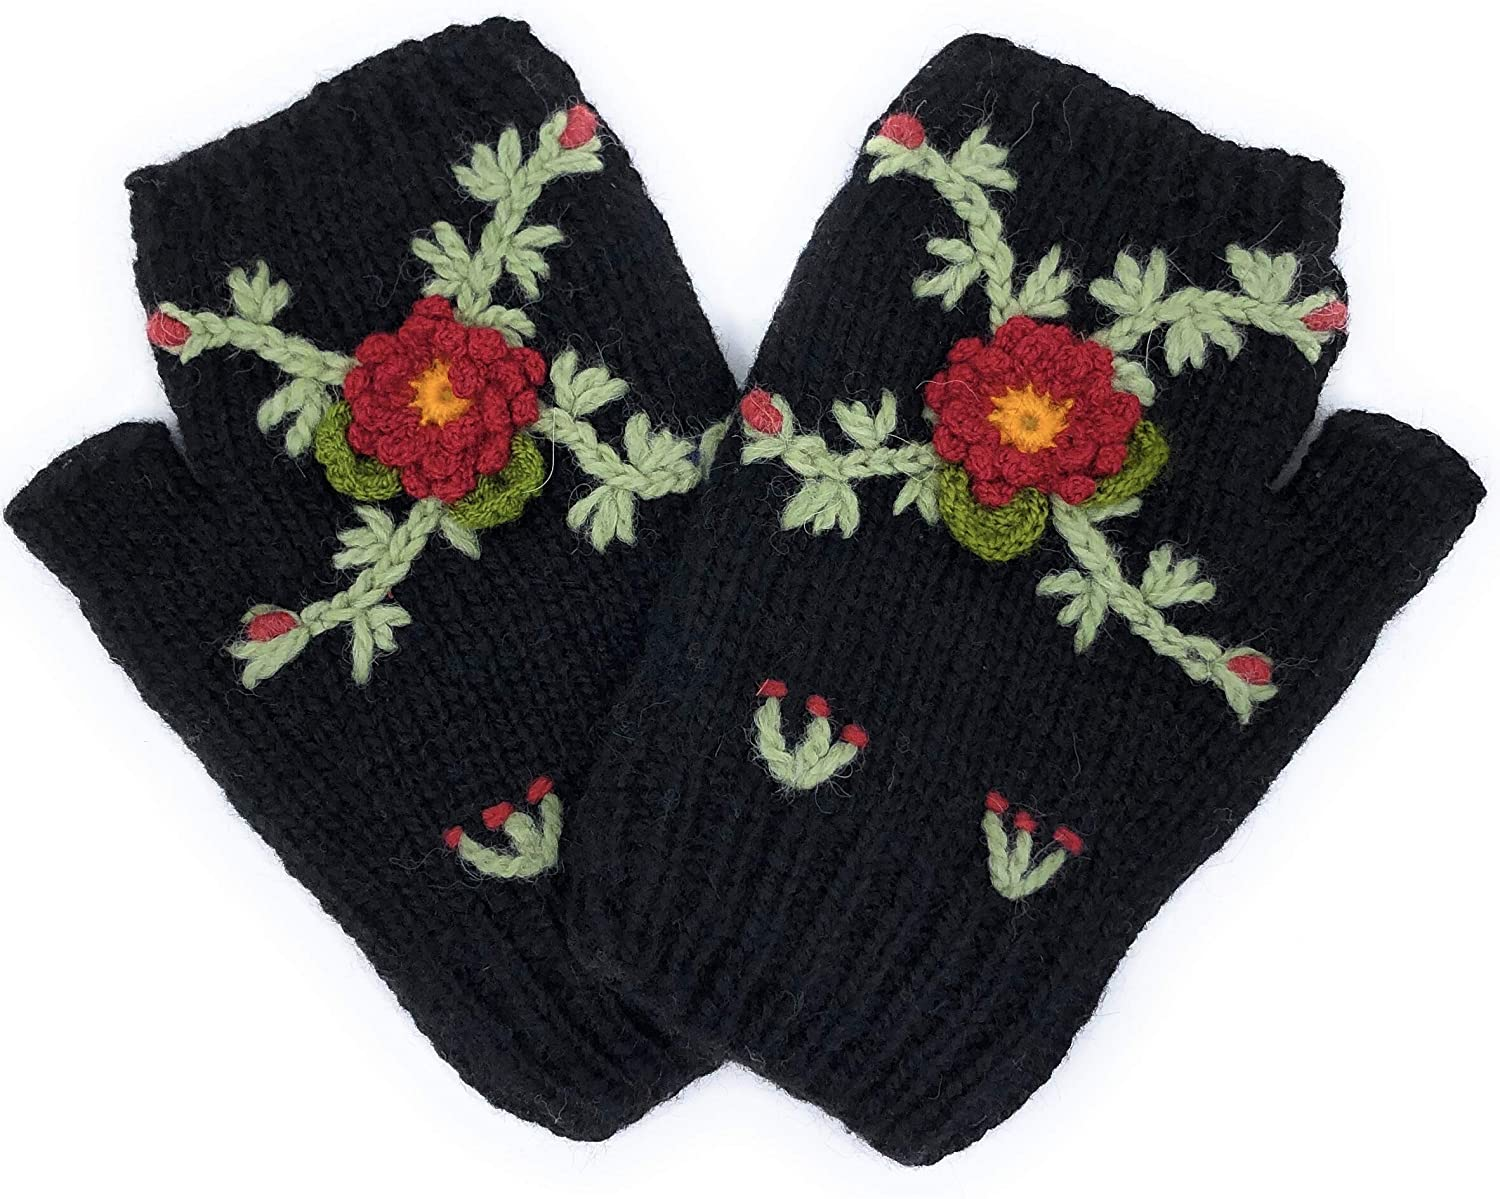 Hand Knit Alpaca Fingerless Embroidered Rose Flower Gloves Fleece Lined Winter Texting Driving Warm